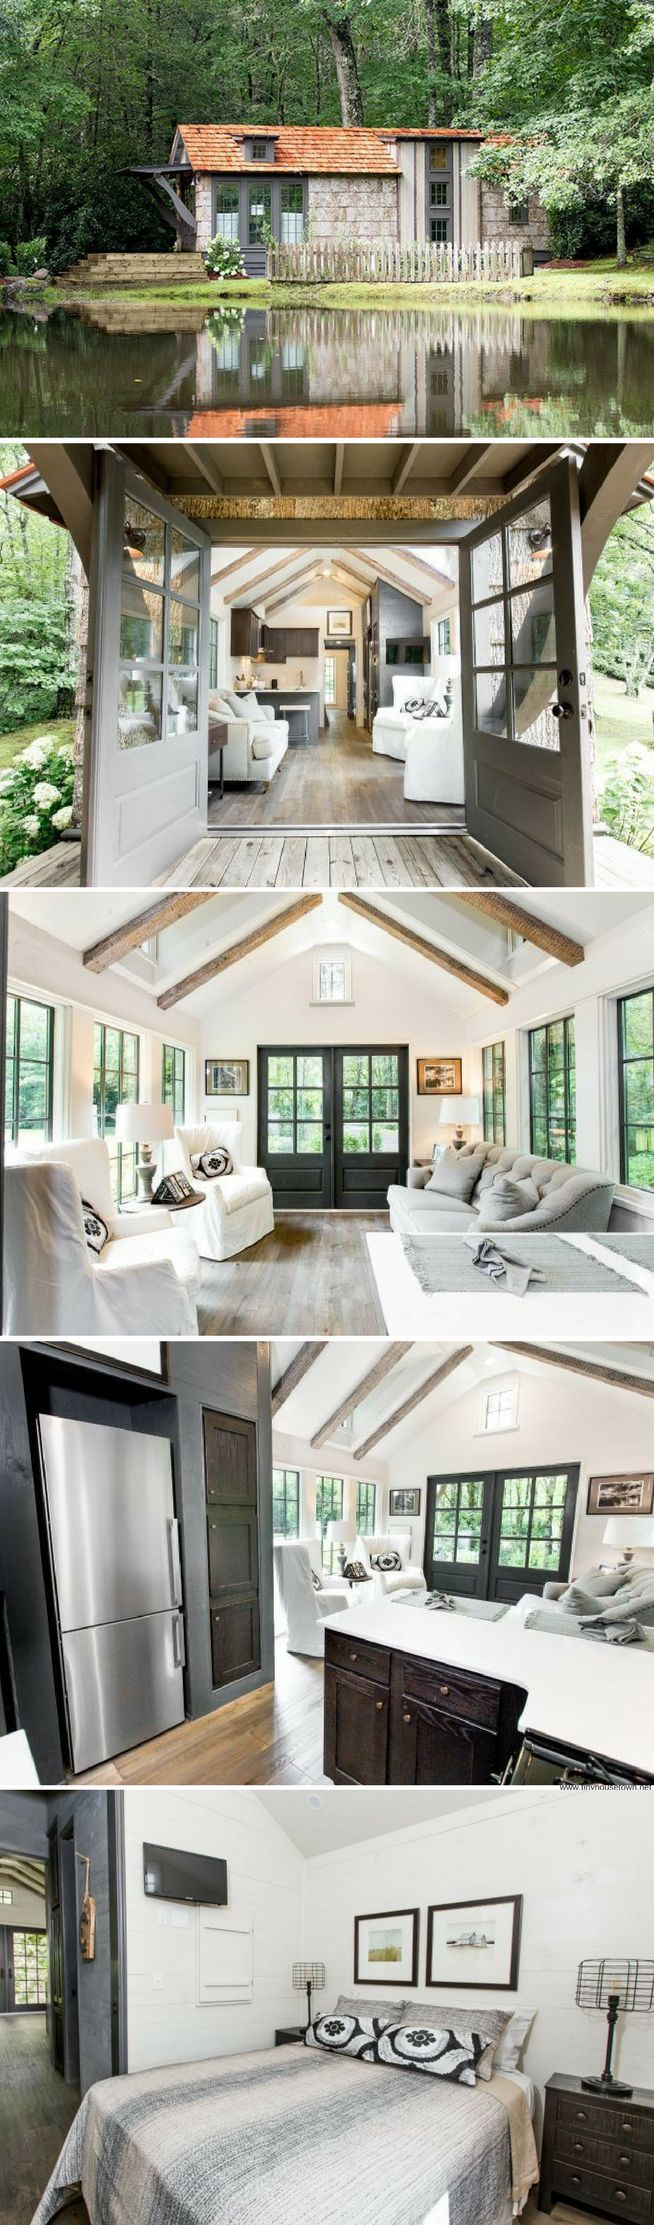 best family cabin images on pinterest small houses tiny house